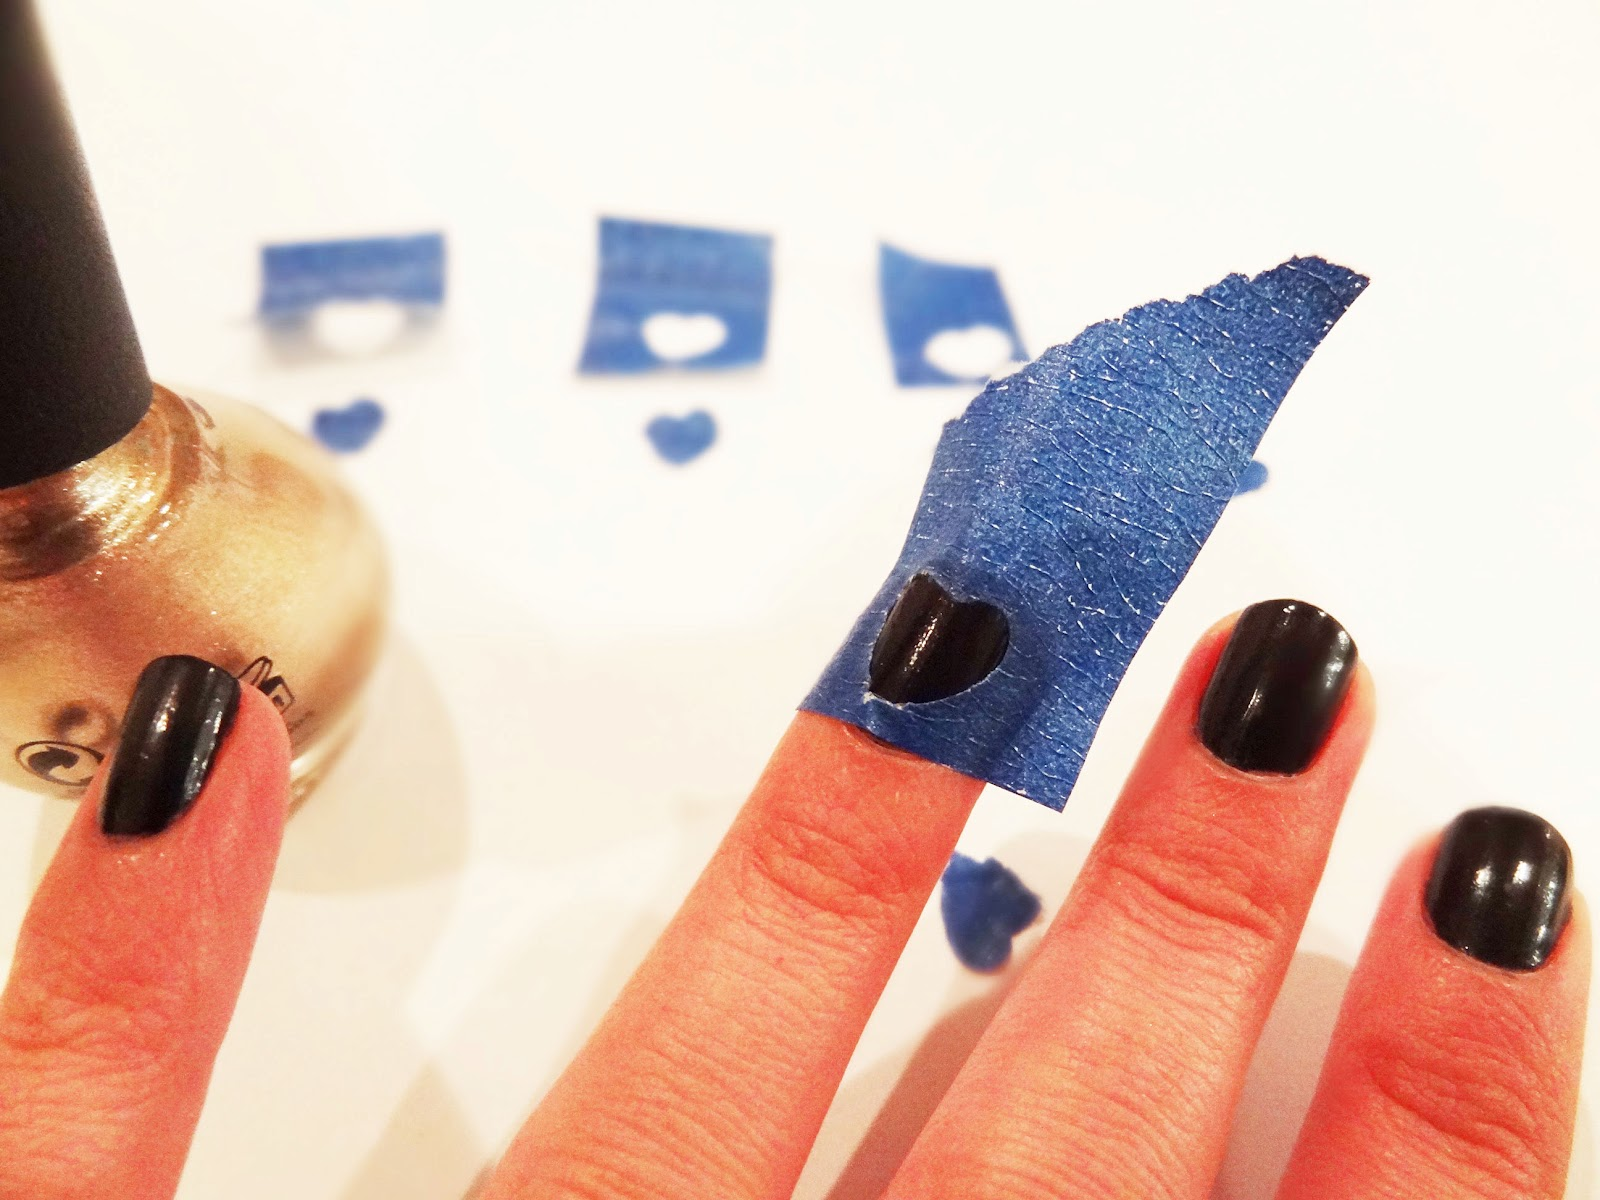 Peel away the tape once nail polish is completely dry: